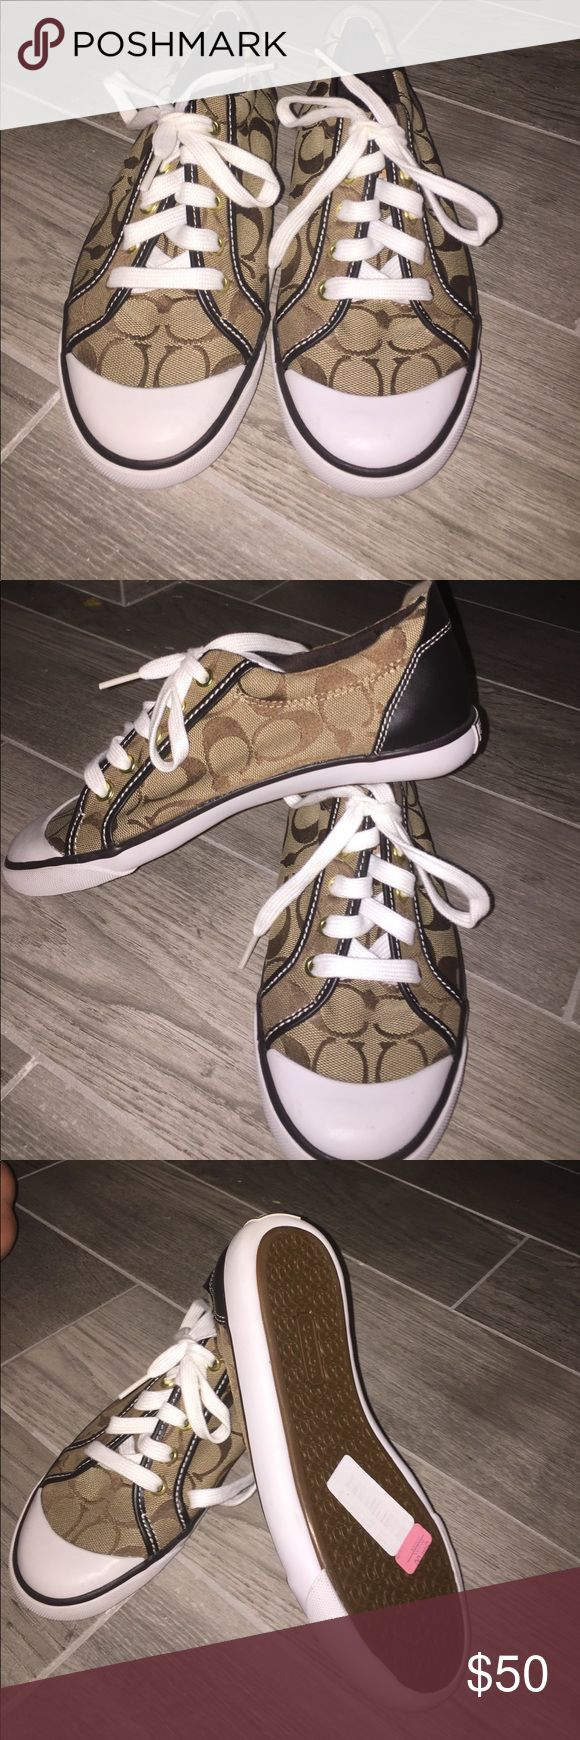 Coach tennis shoes Brown and tan coach tennis shoes - Brand new never worn Coach Shoes Sneakers